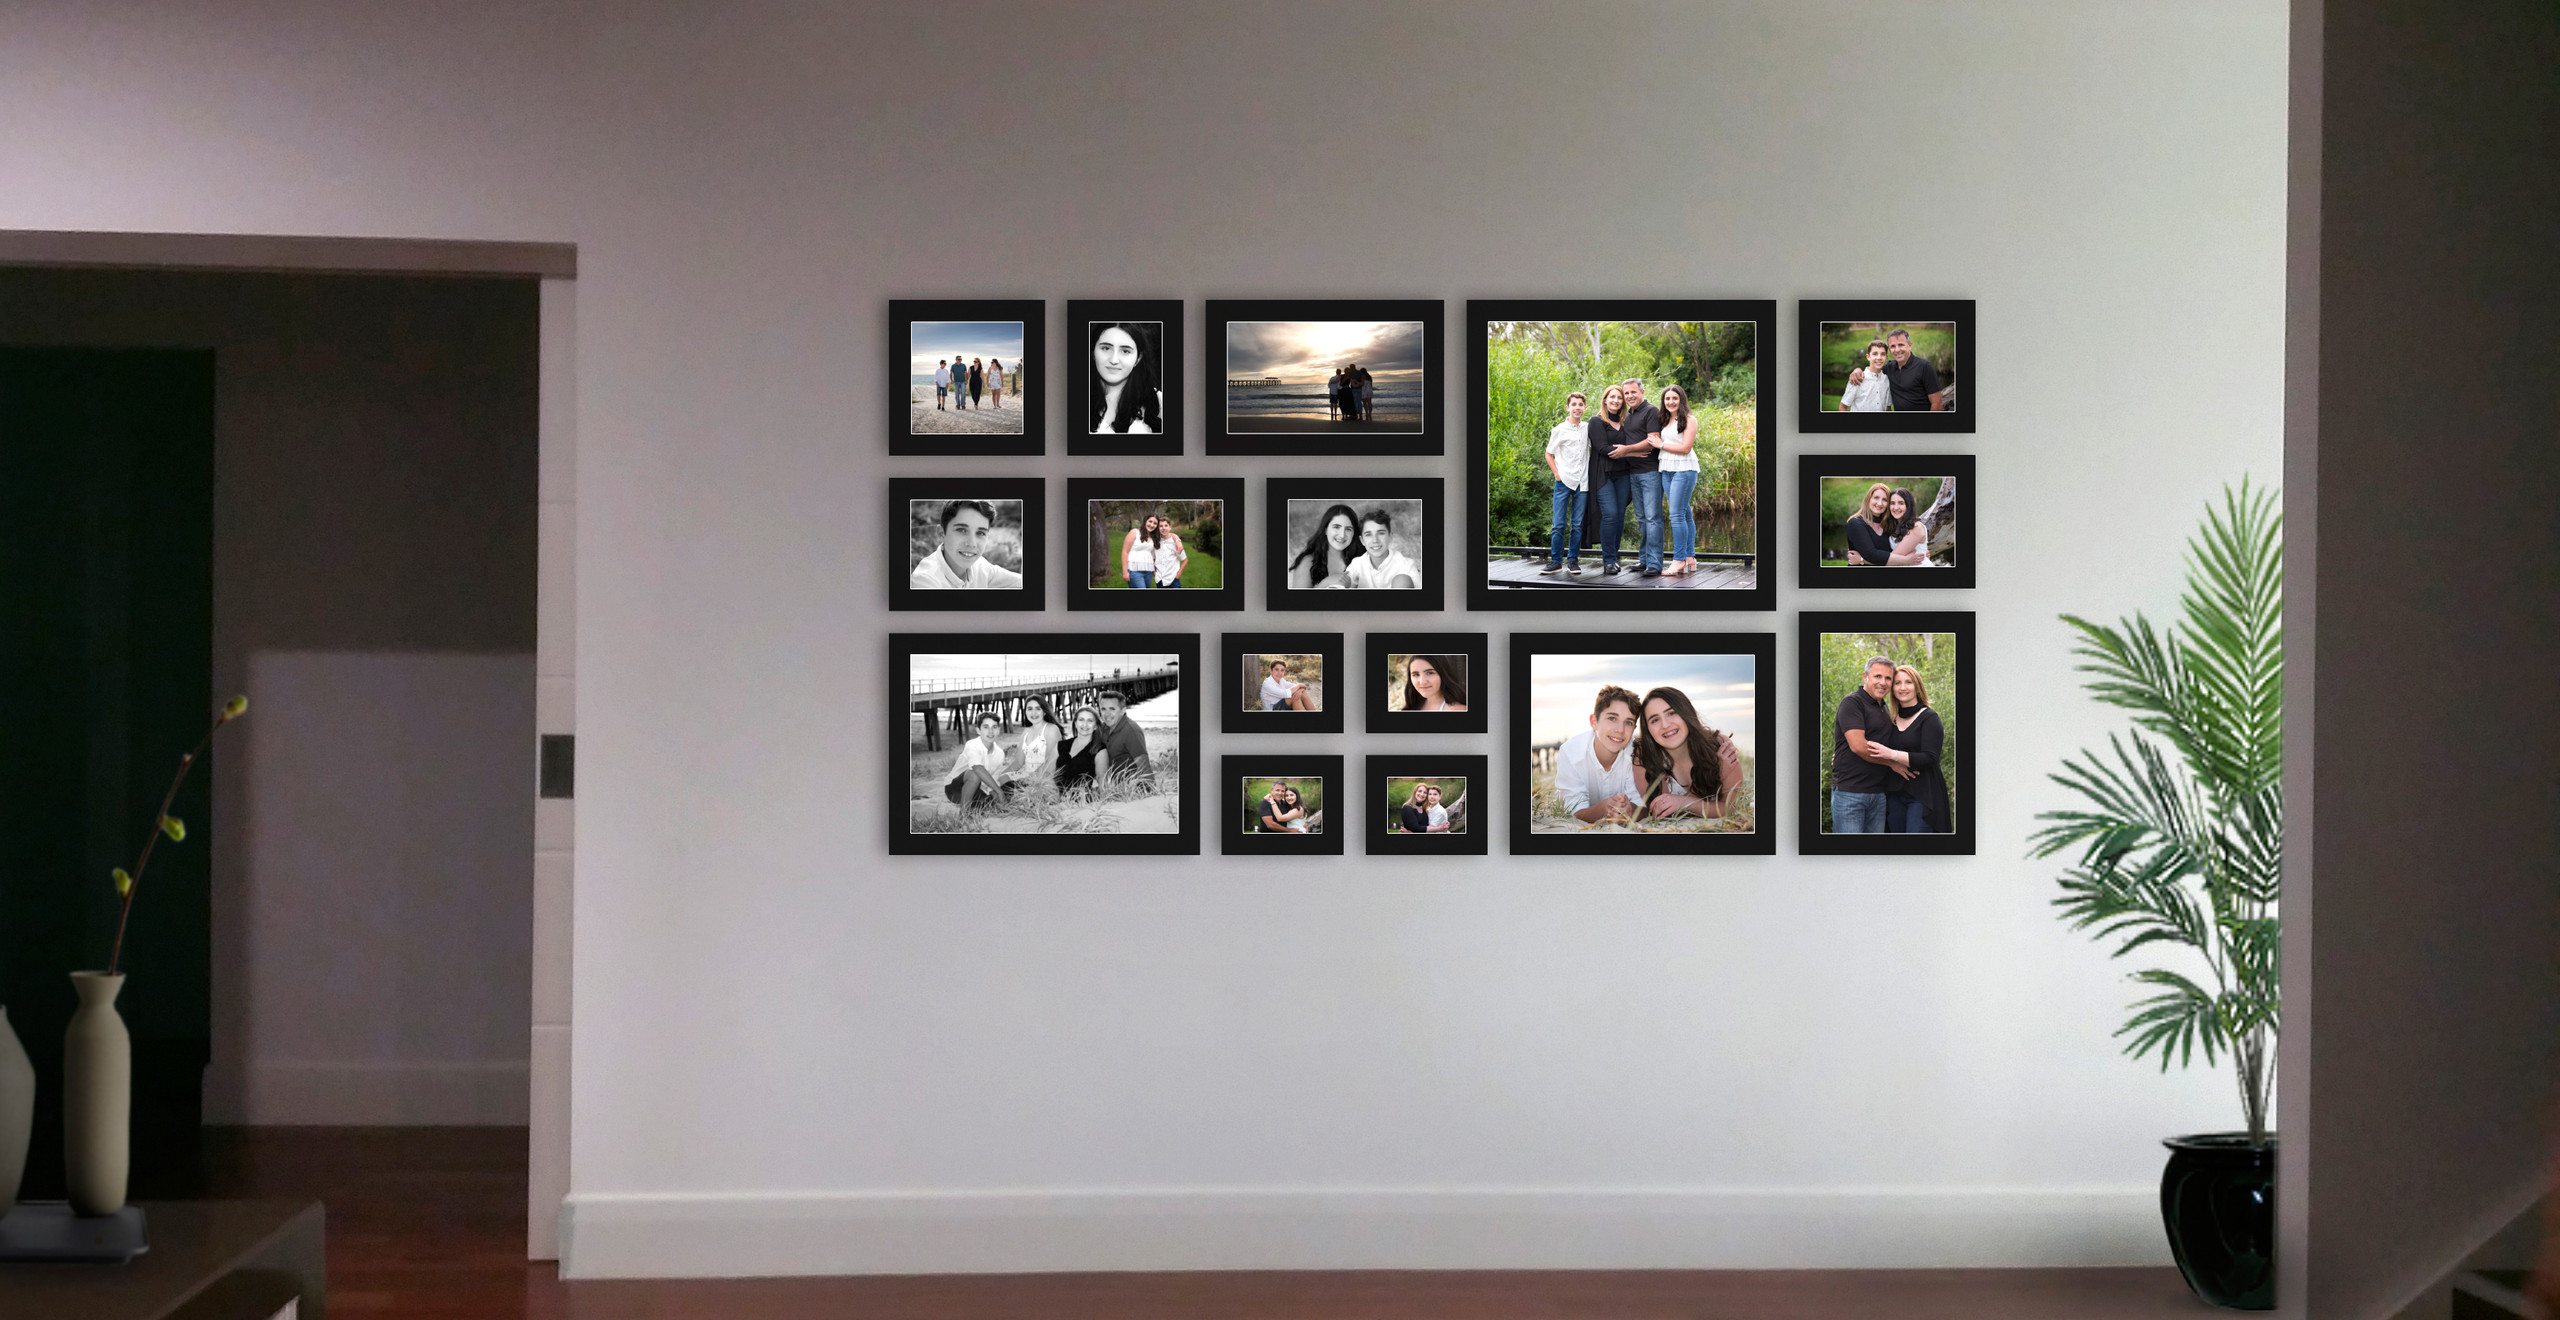 Photographs By Tania Gaylor Photography